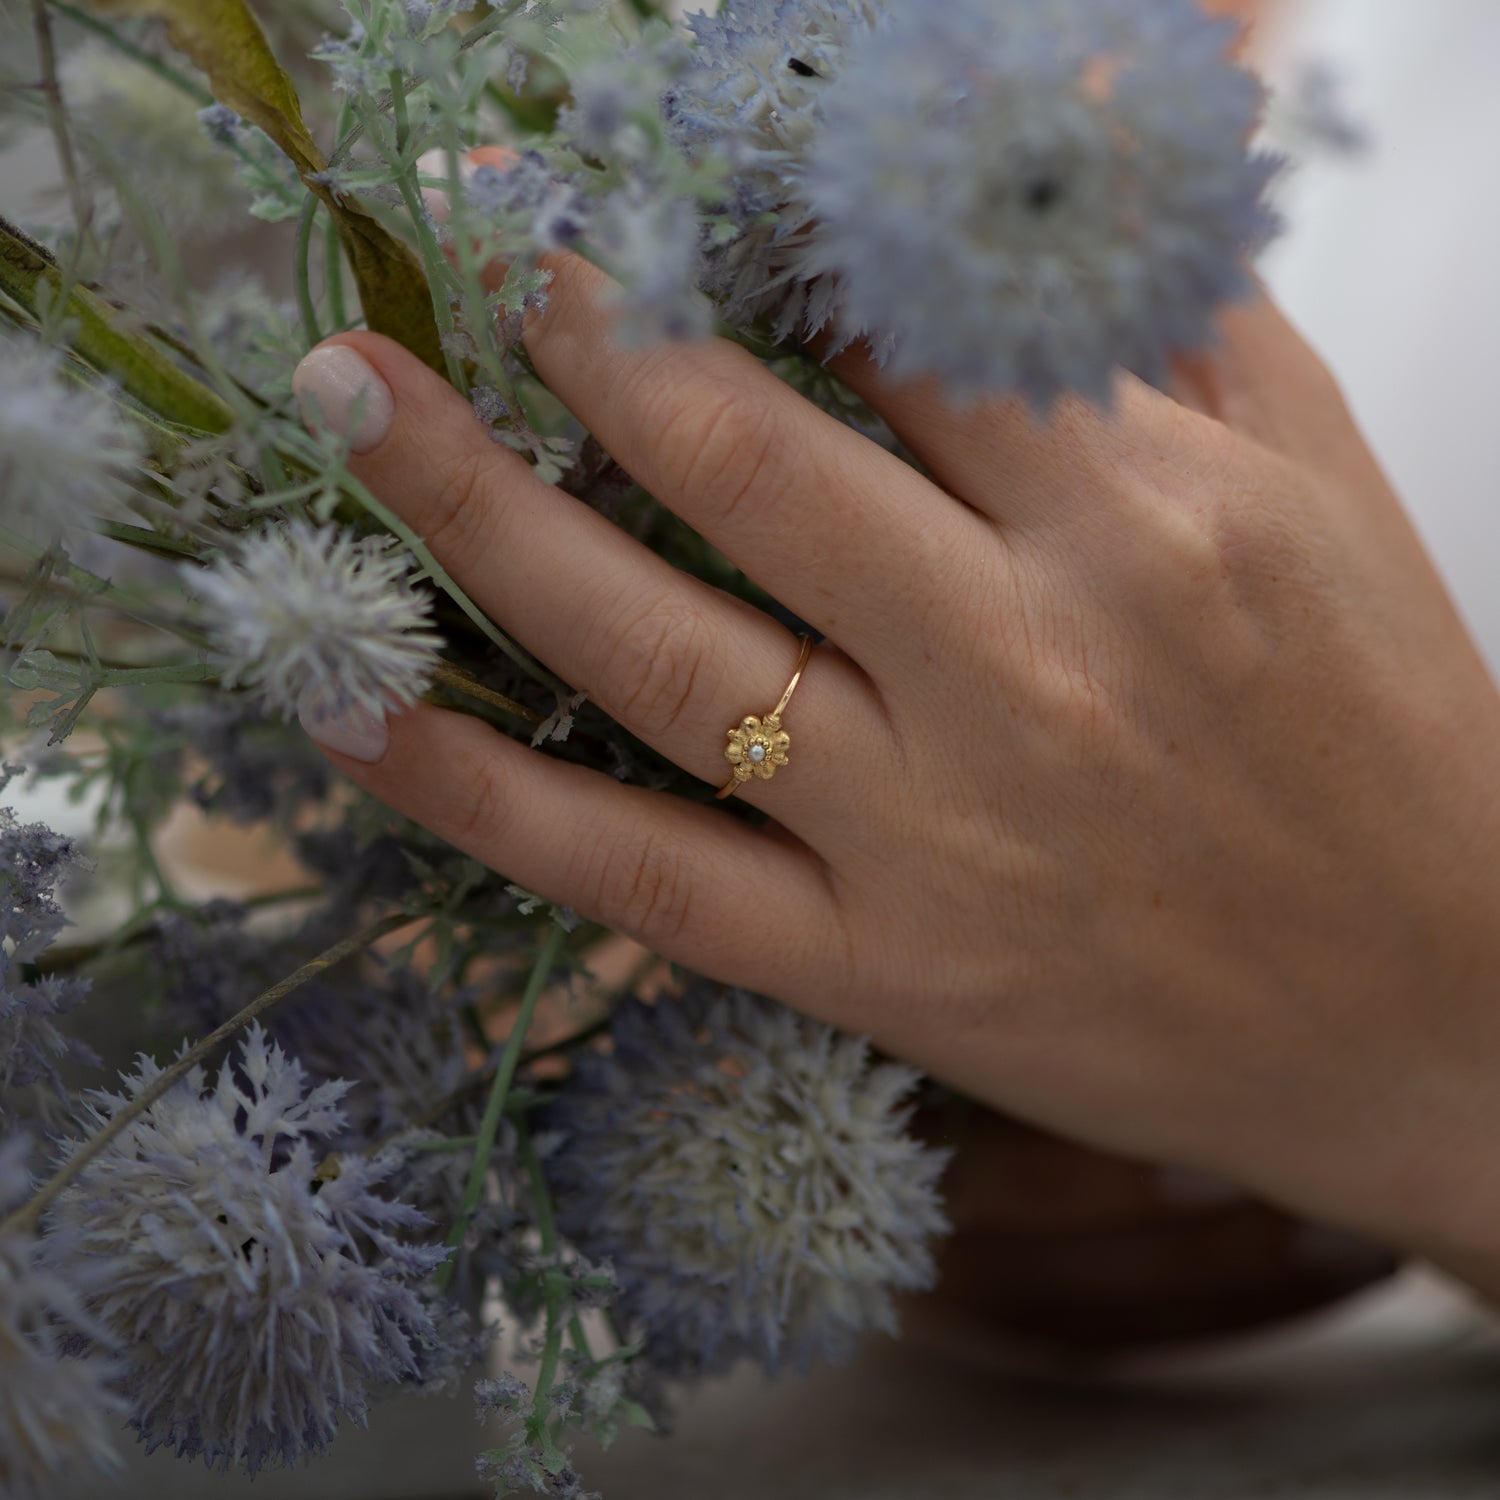 Dainty-Gold-Flower-Ring-Seed-Pearl-Ring-flowers